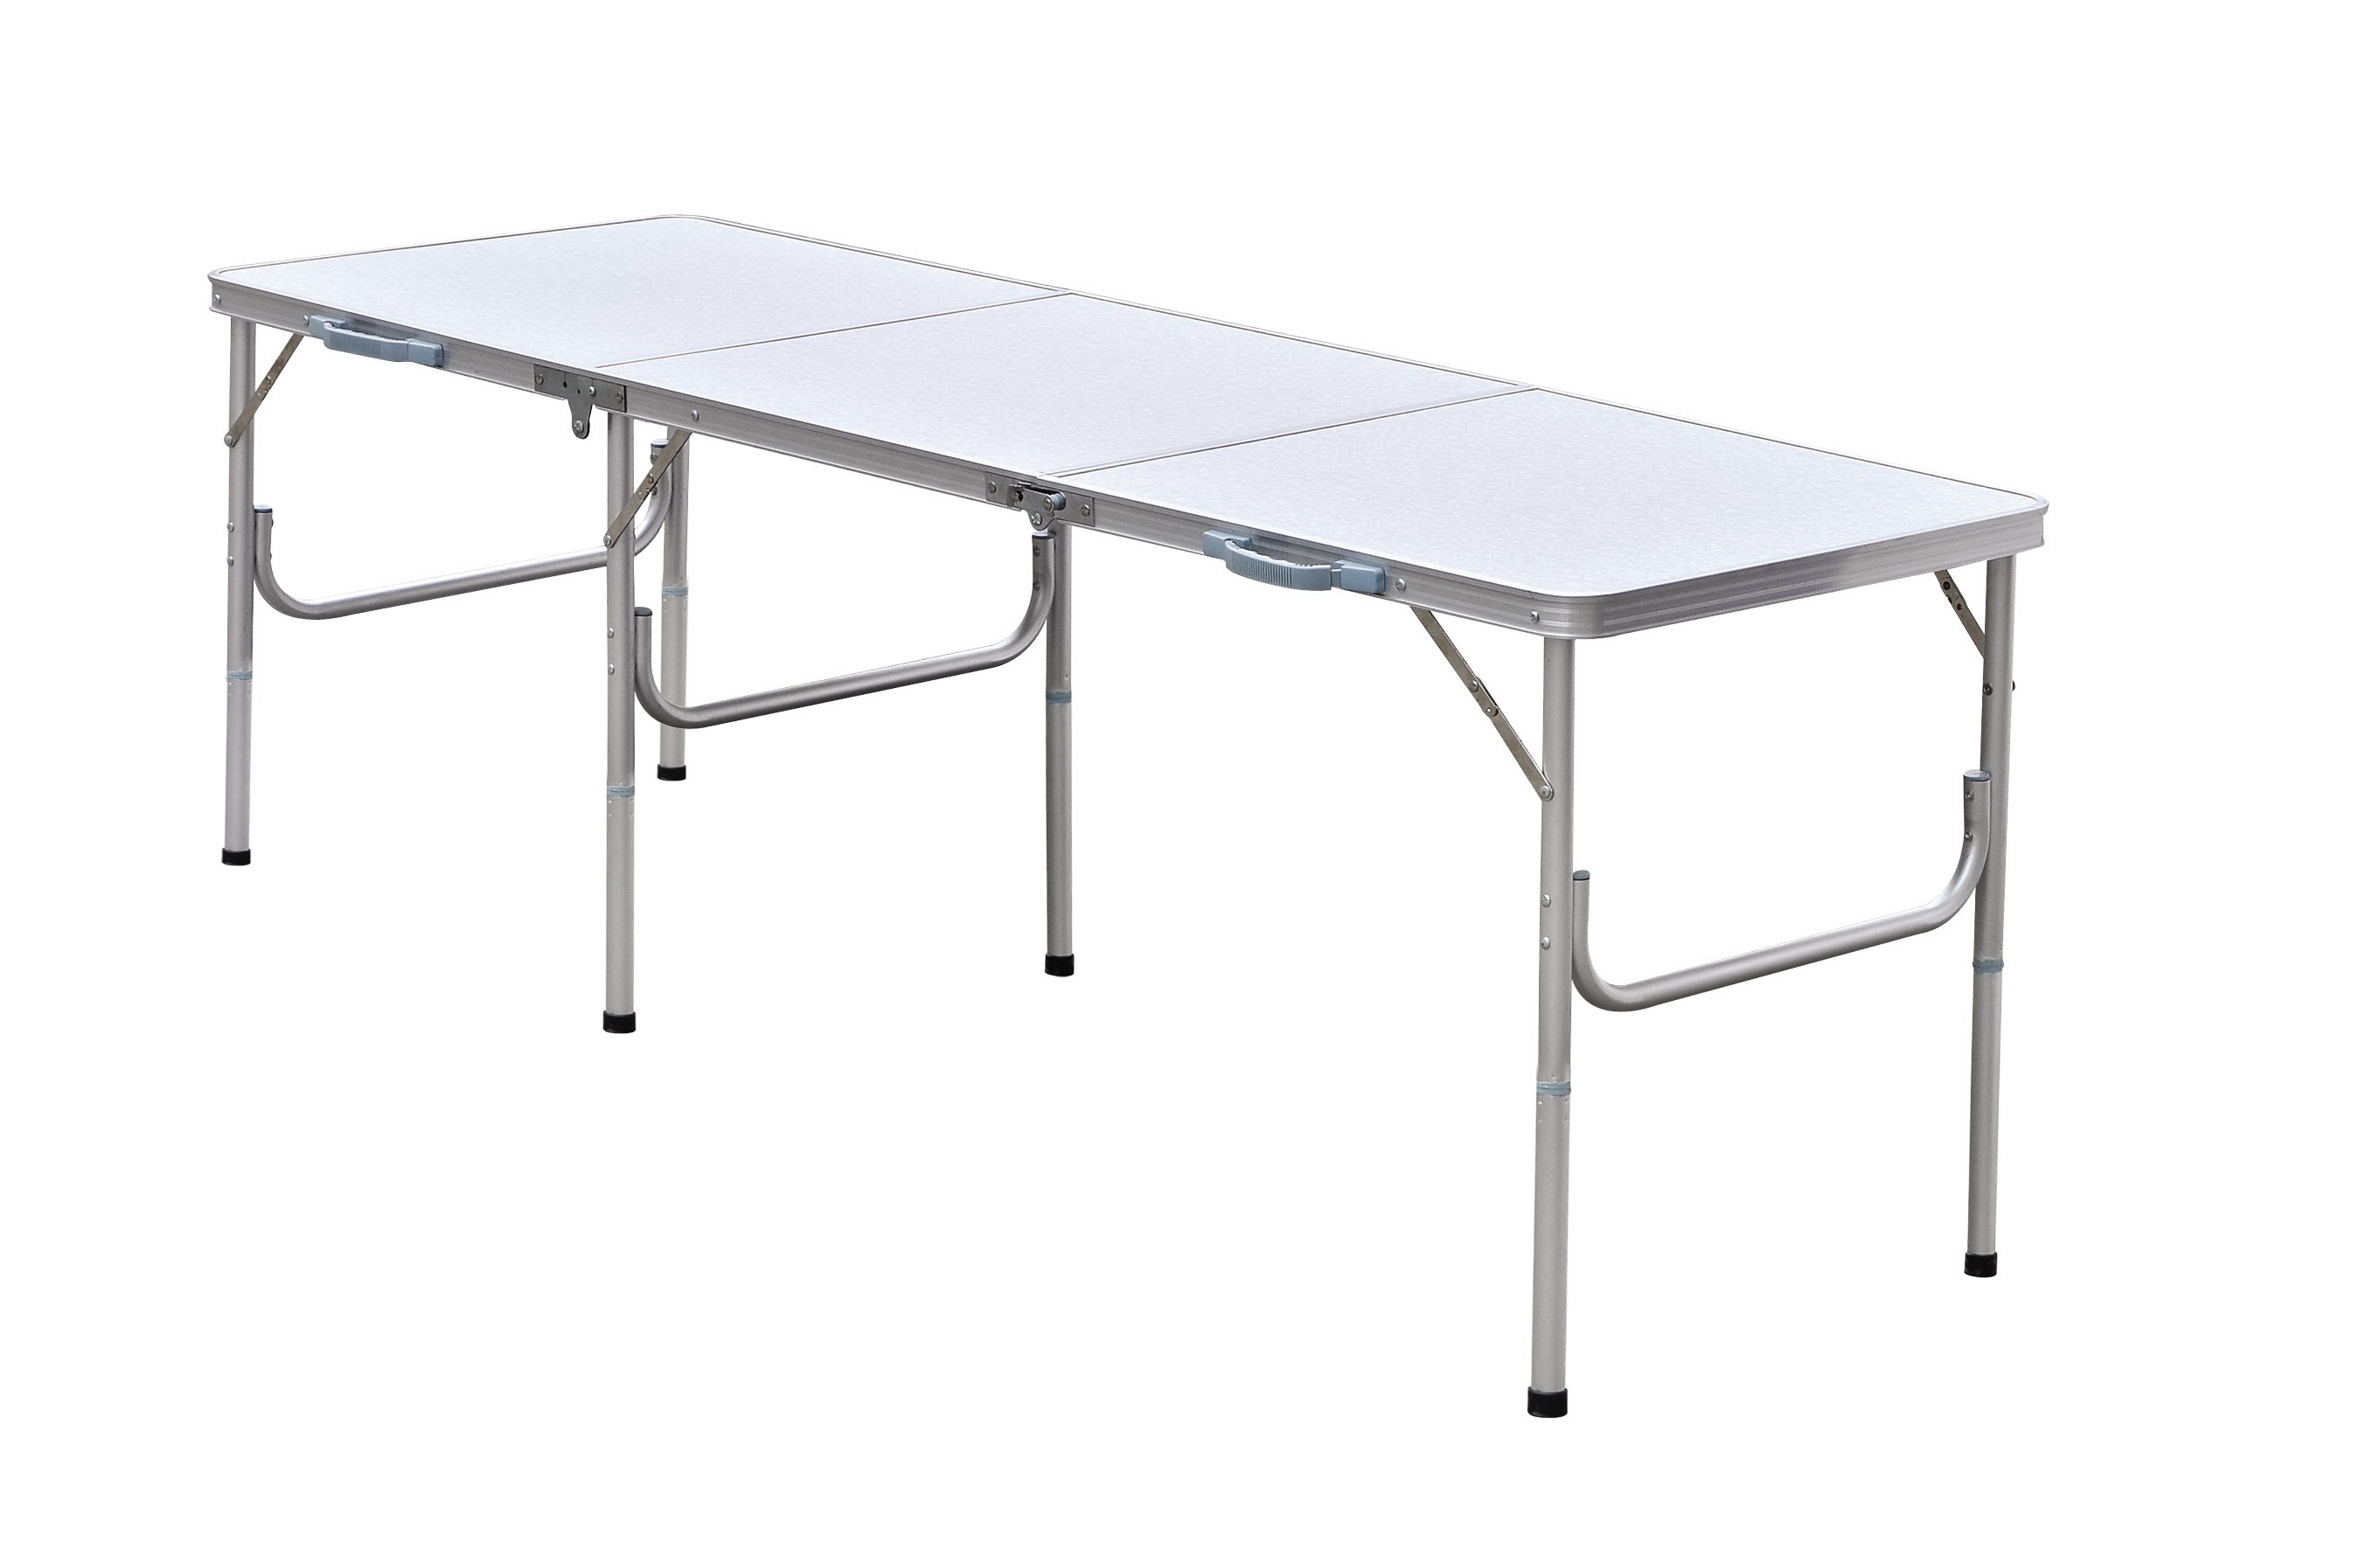 Camping Folding Table And Chairs Set Table Camping Furniture Chairsetstablebedlounge